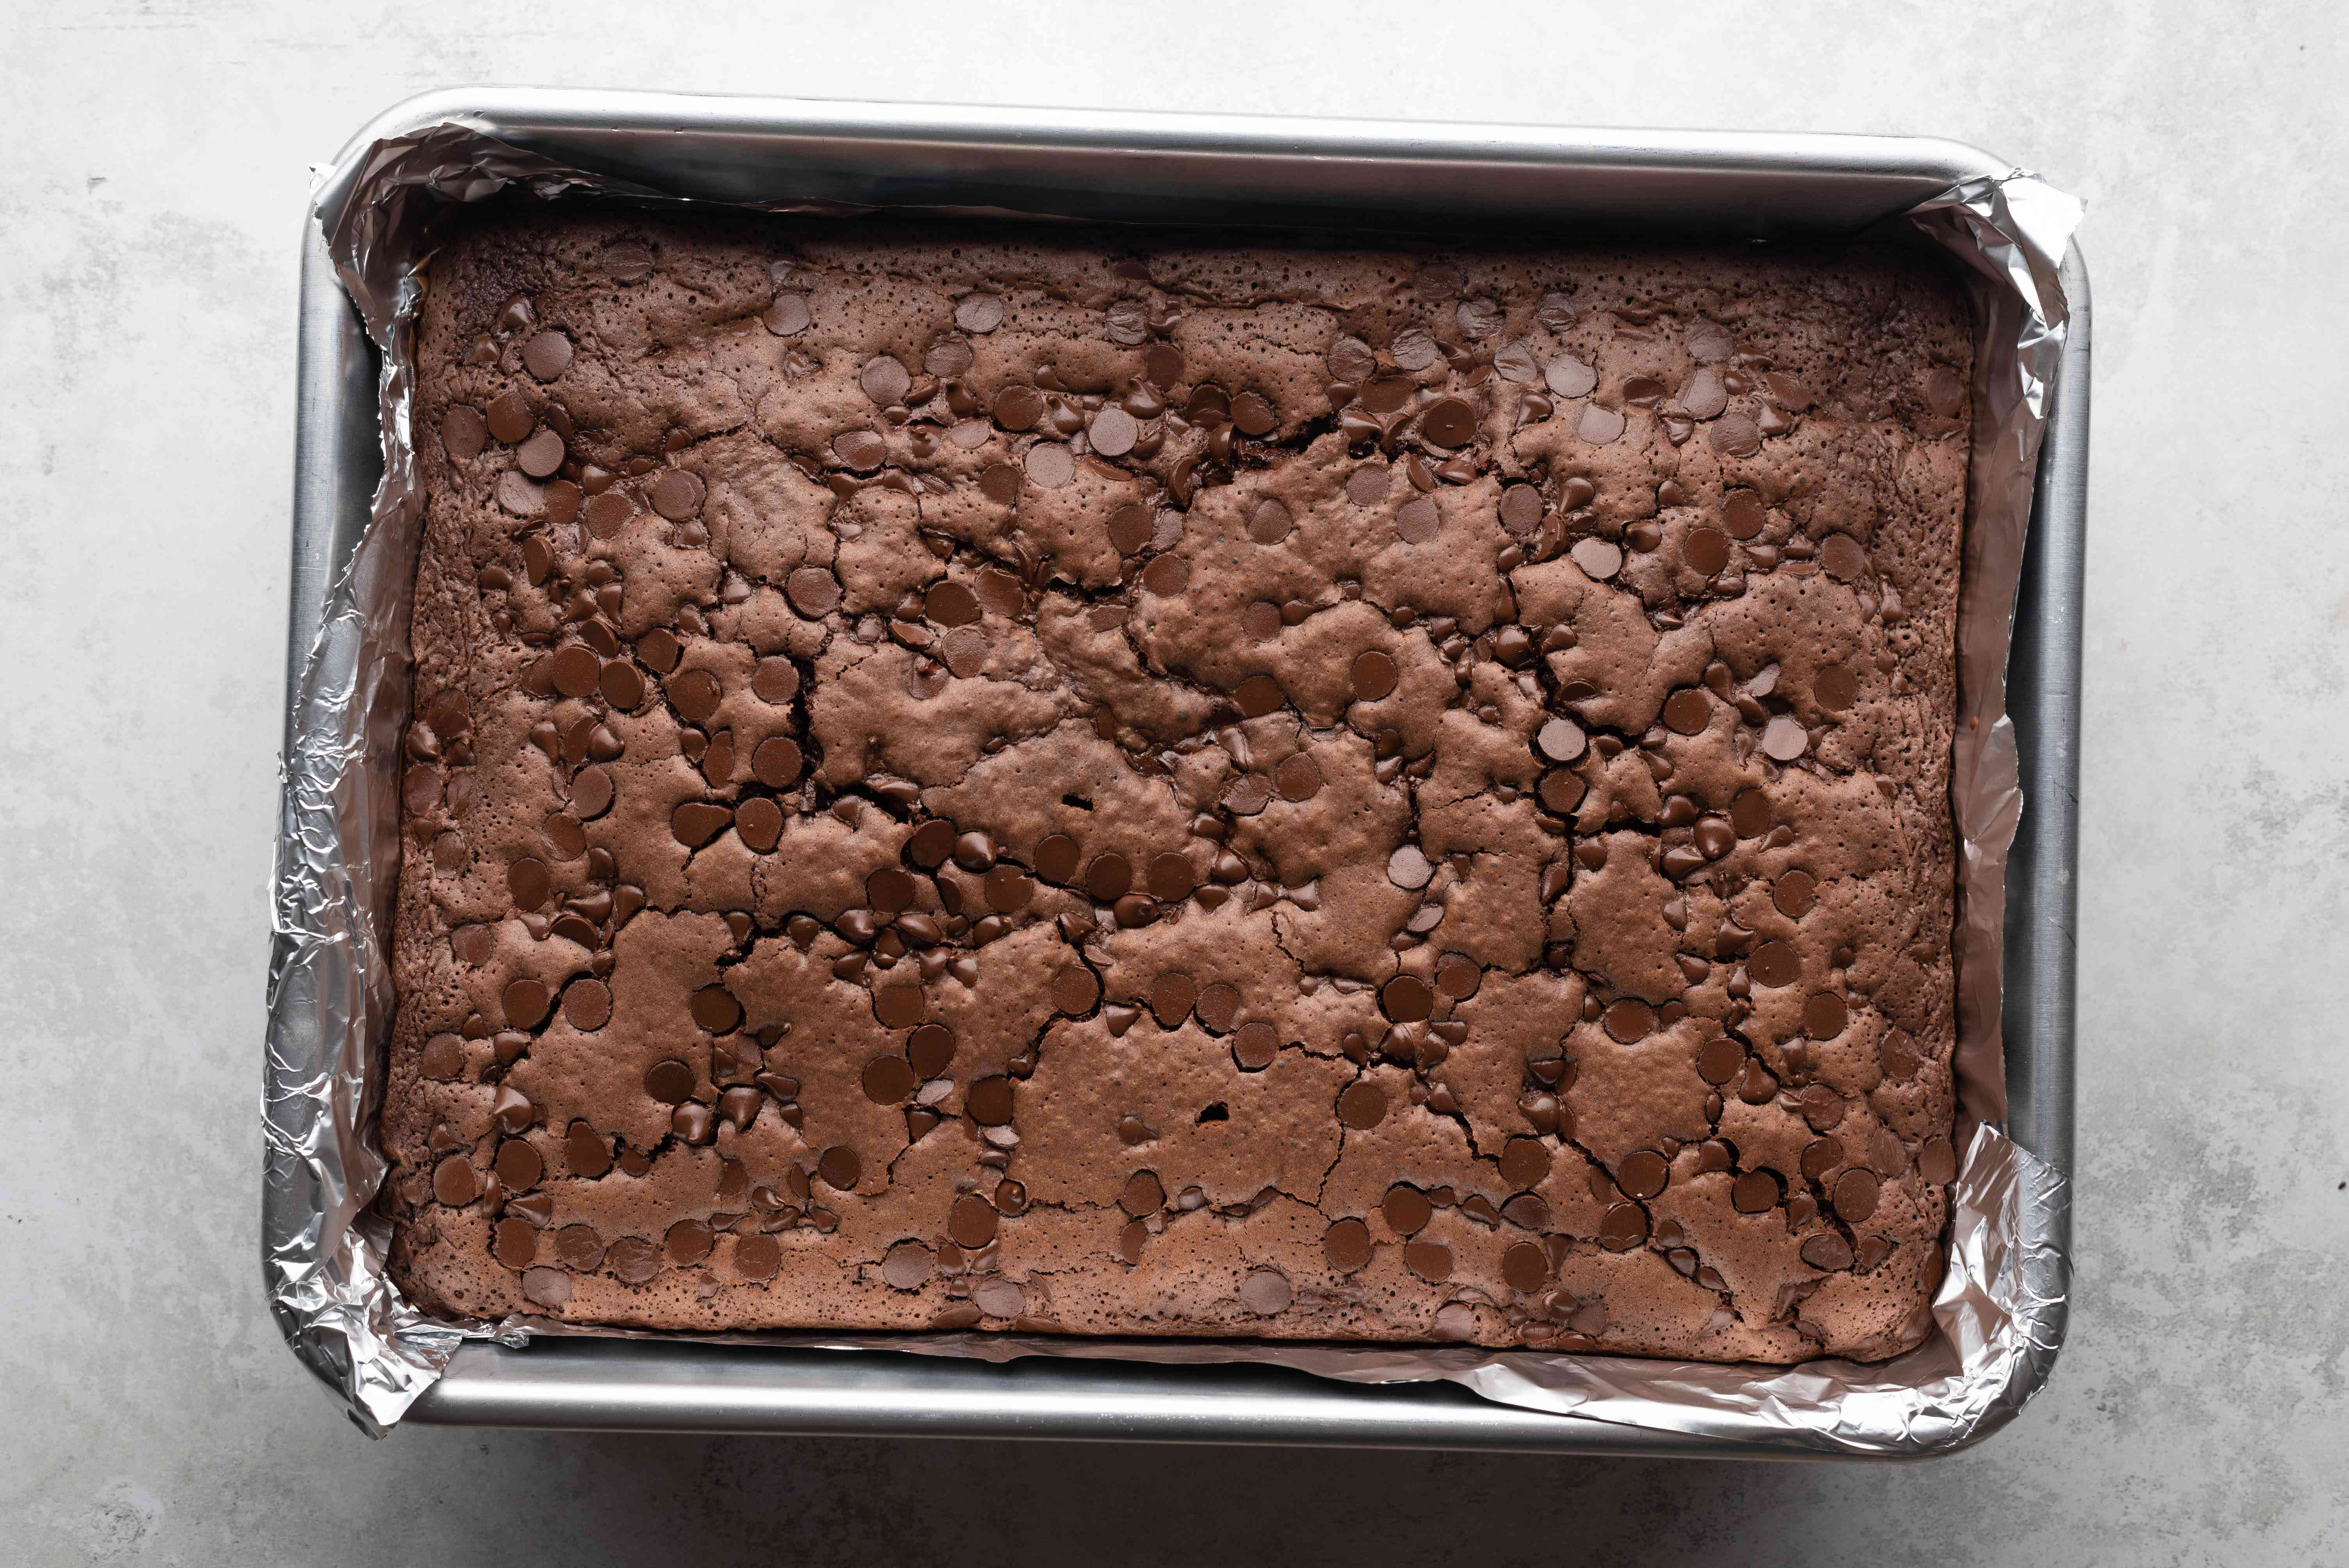 Guinness Stout Chocolate Brownies in a baking pan